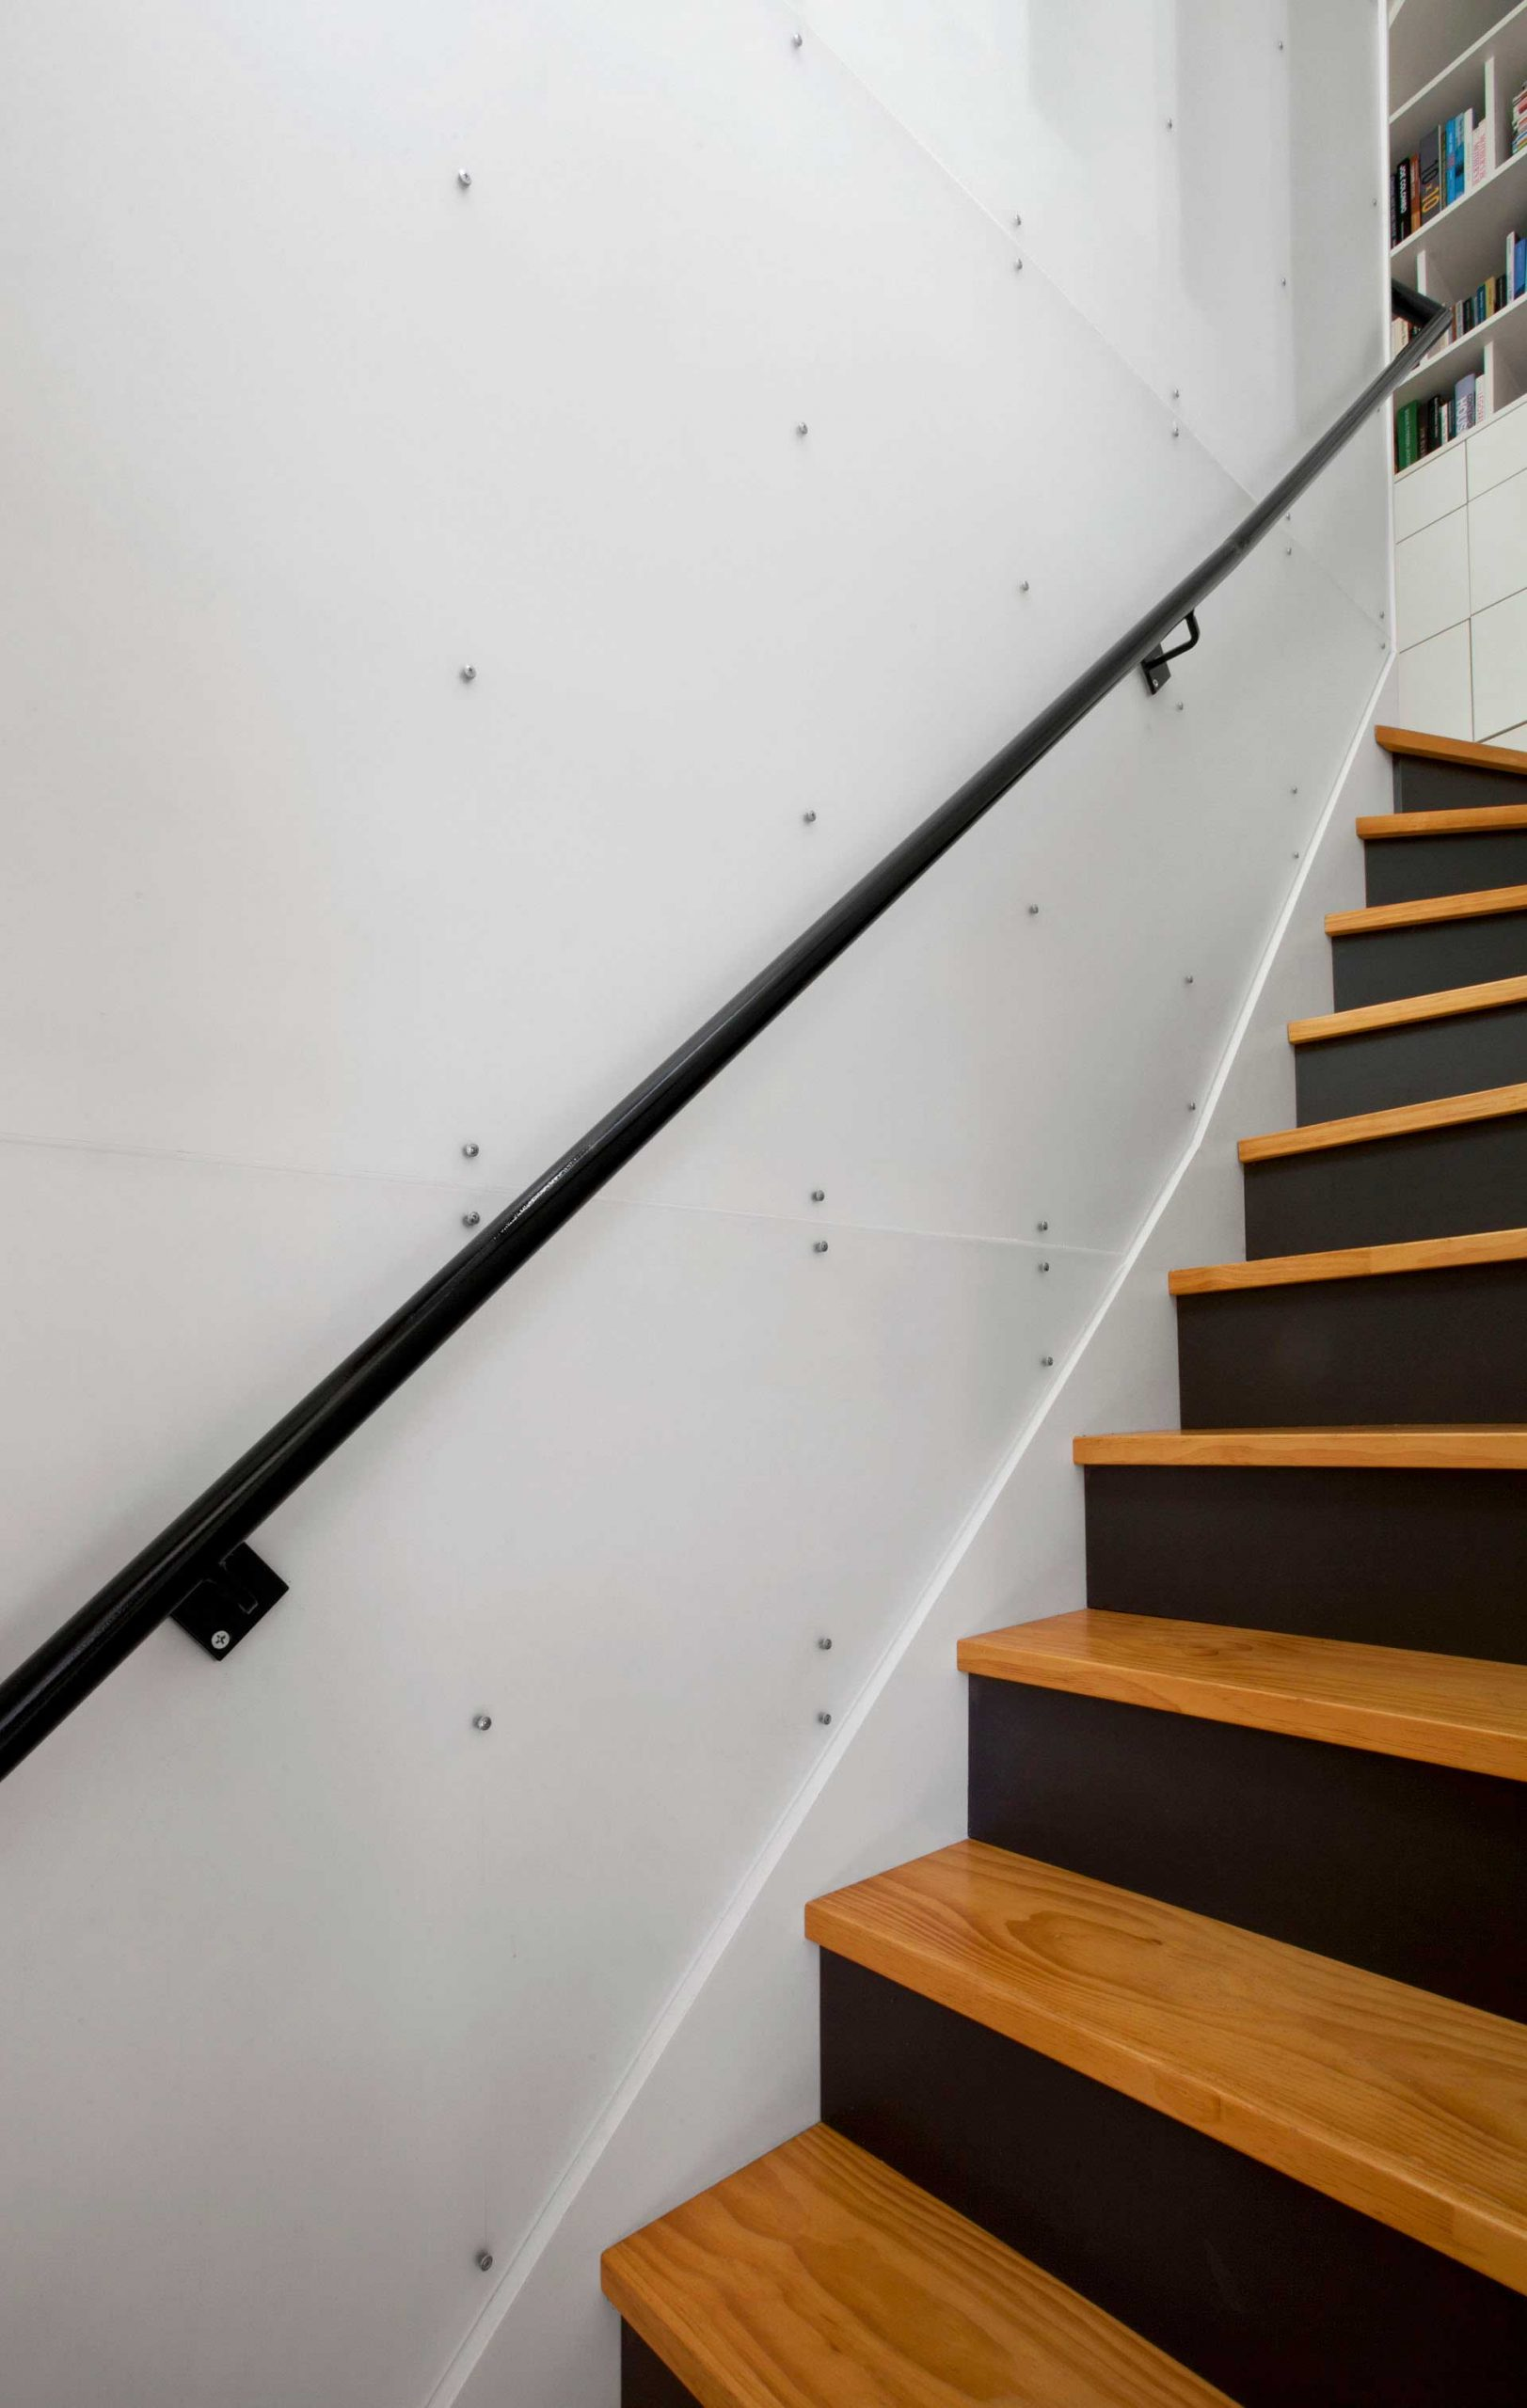 Carriage House Stair to Studio - LUMAsite acrylic, steel handrail, Pine treads - winder stair - Classic Irvington Tudor Remodel - Indianapolis, IN